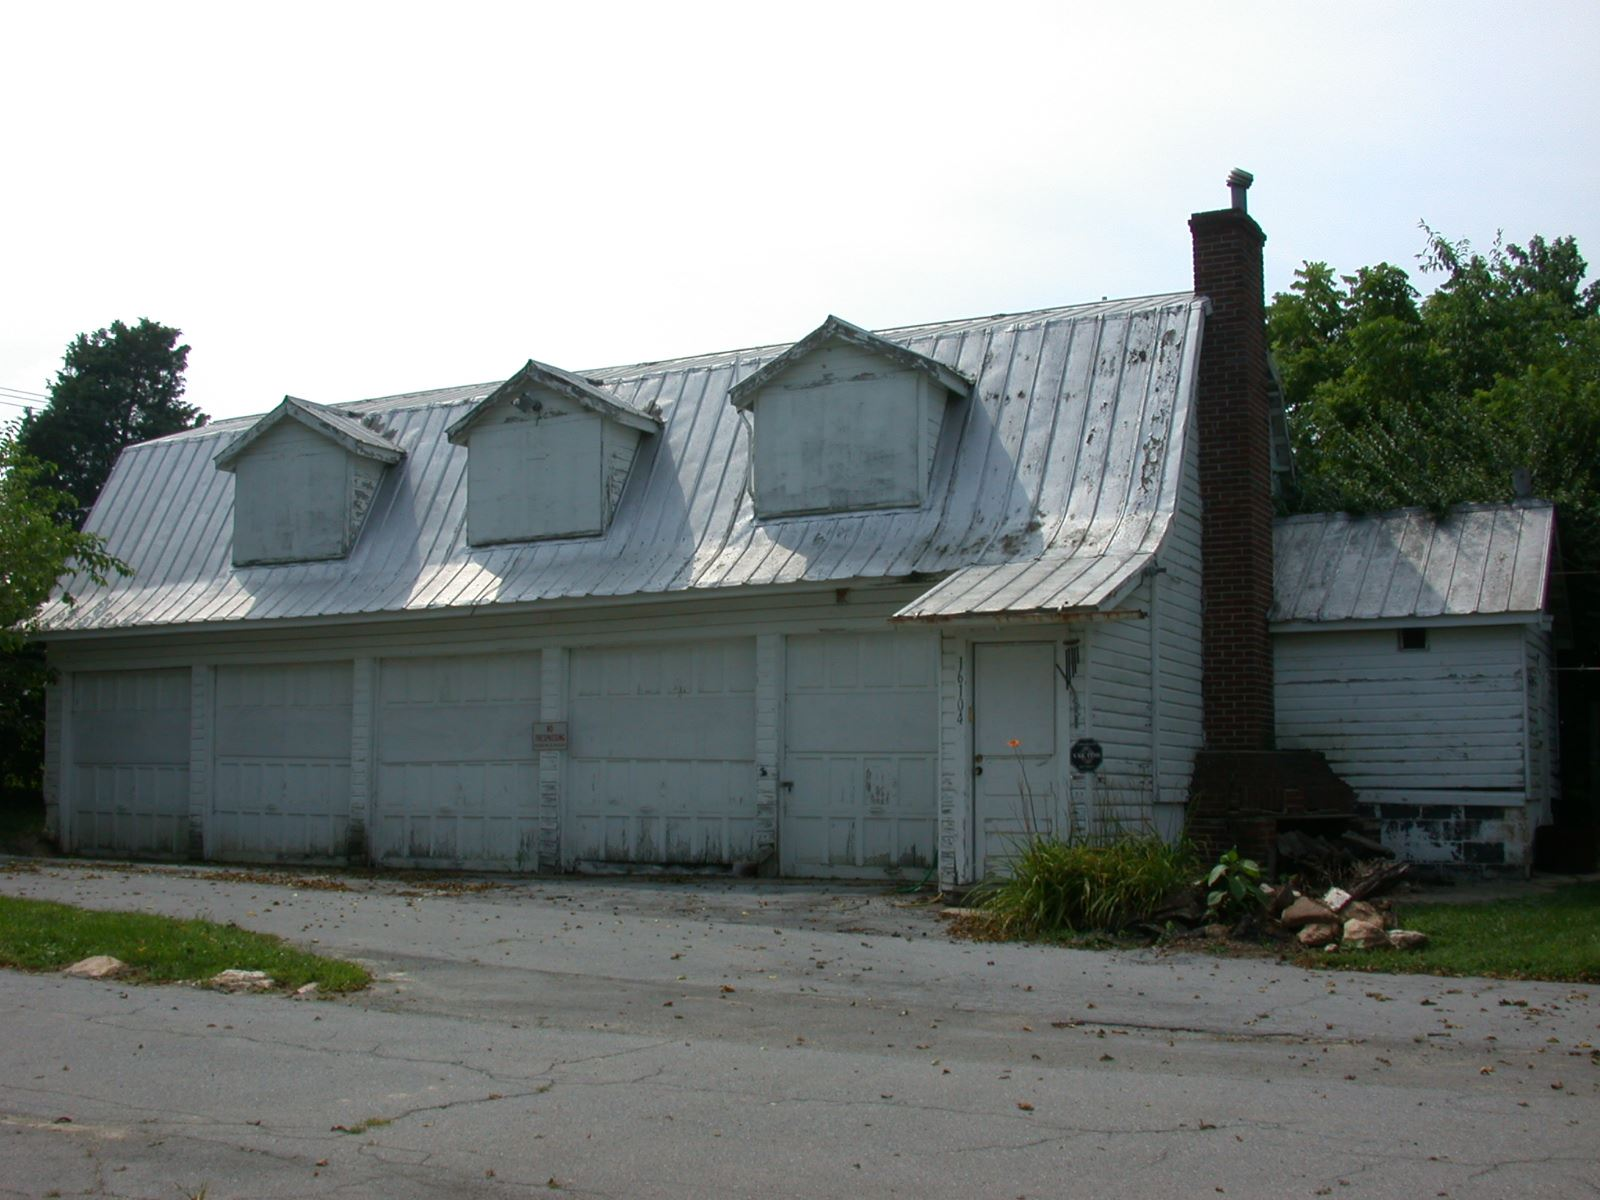 King Farm Farmstead garage